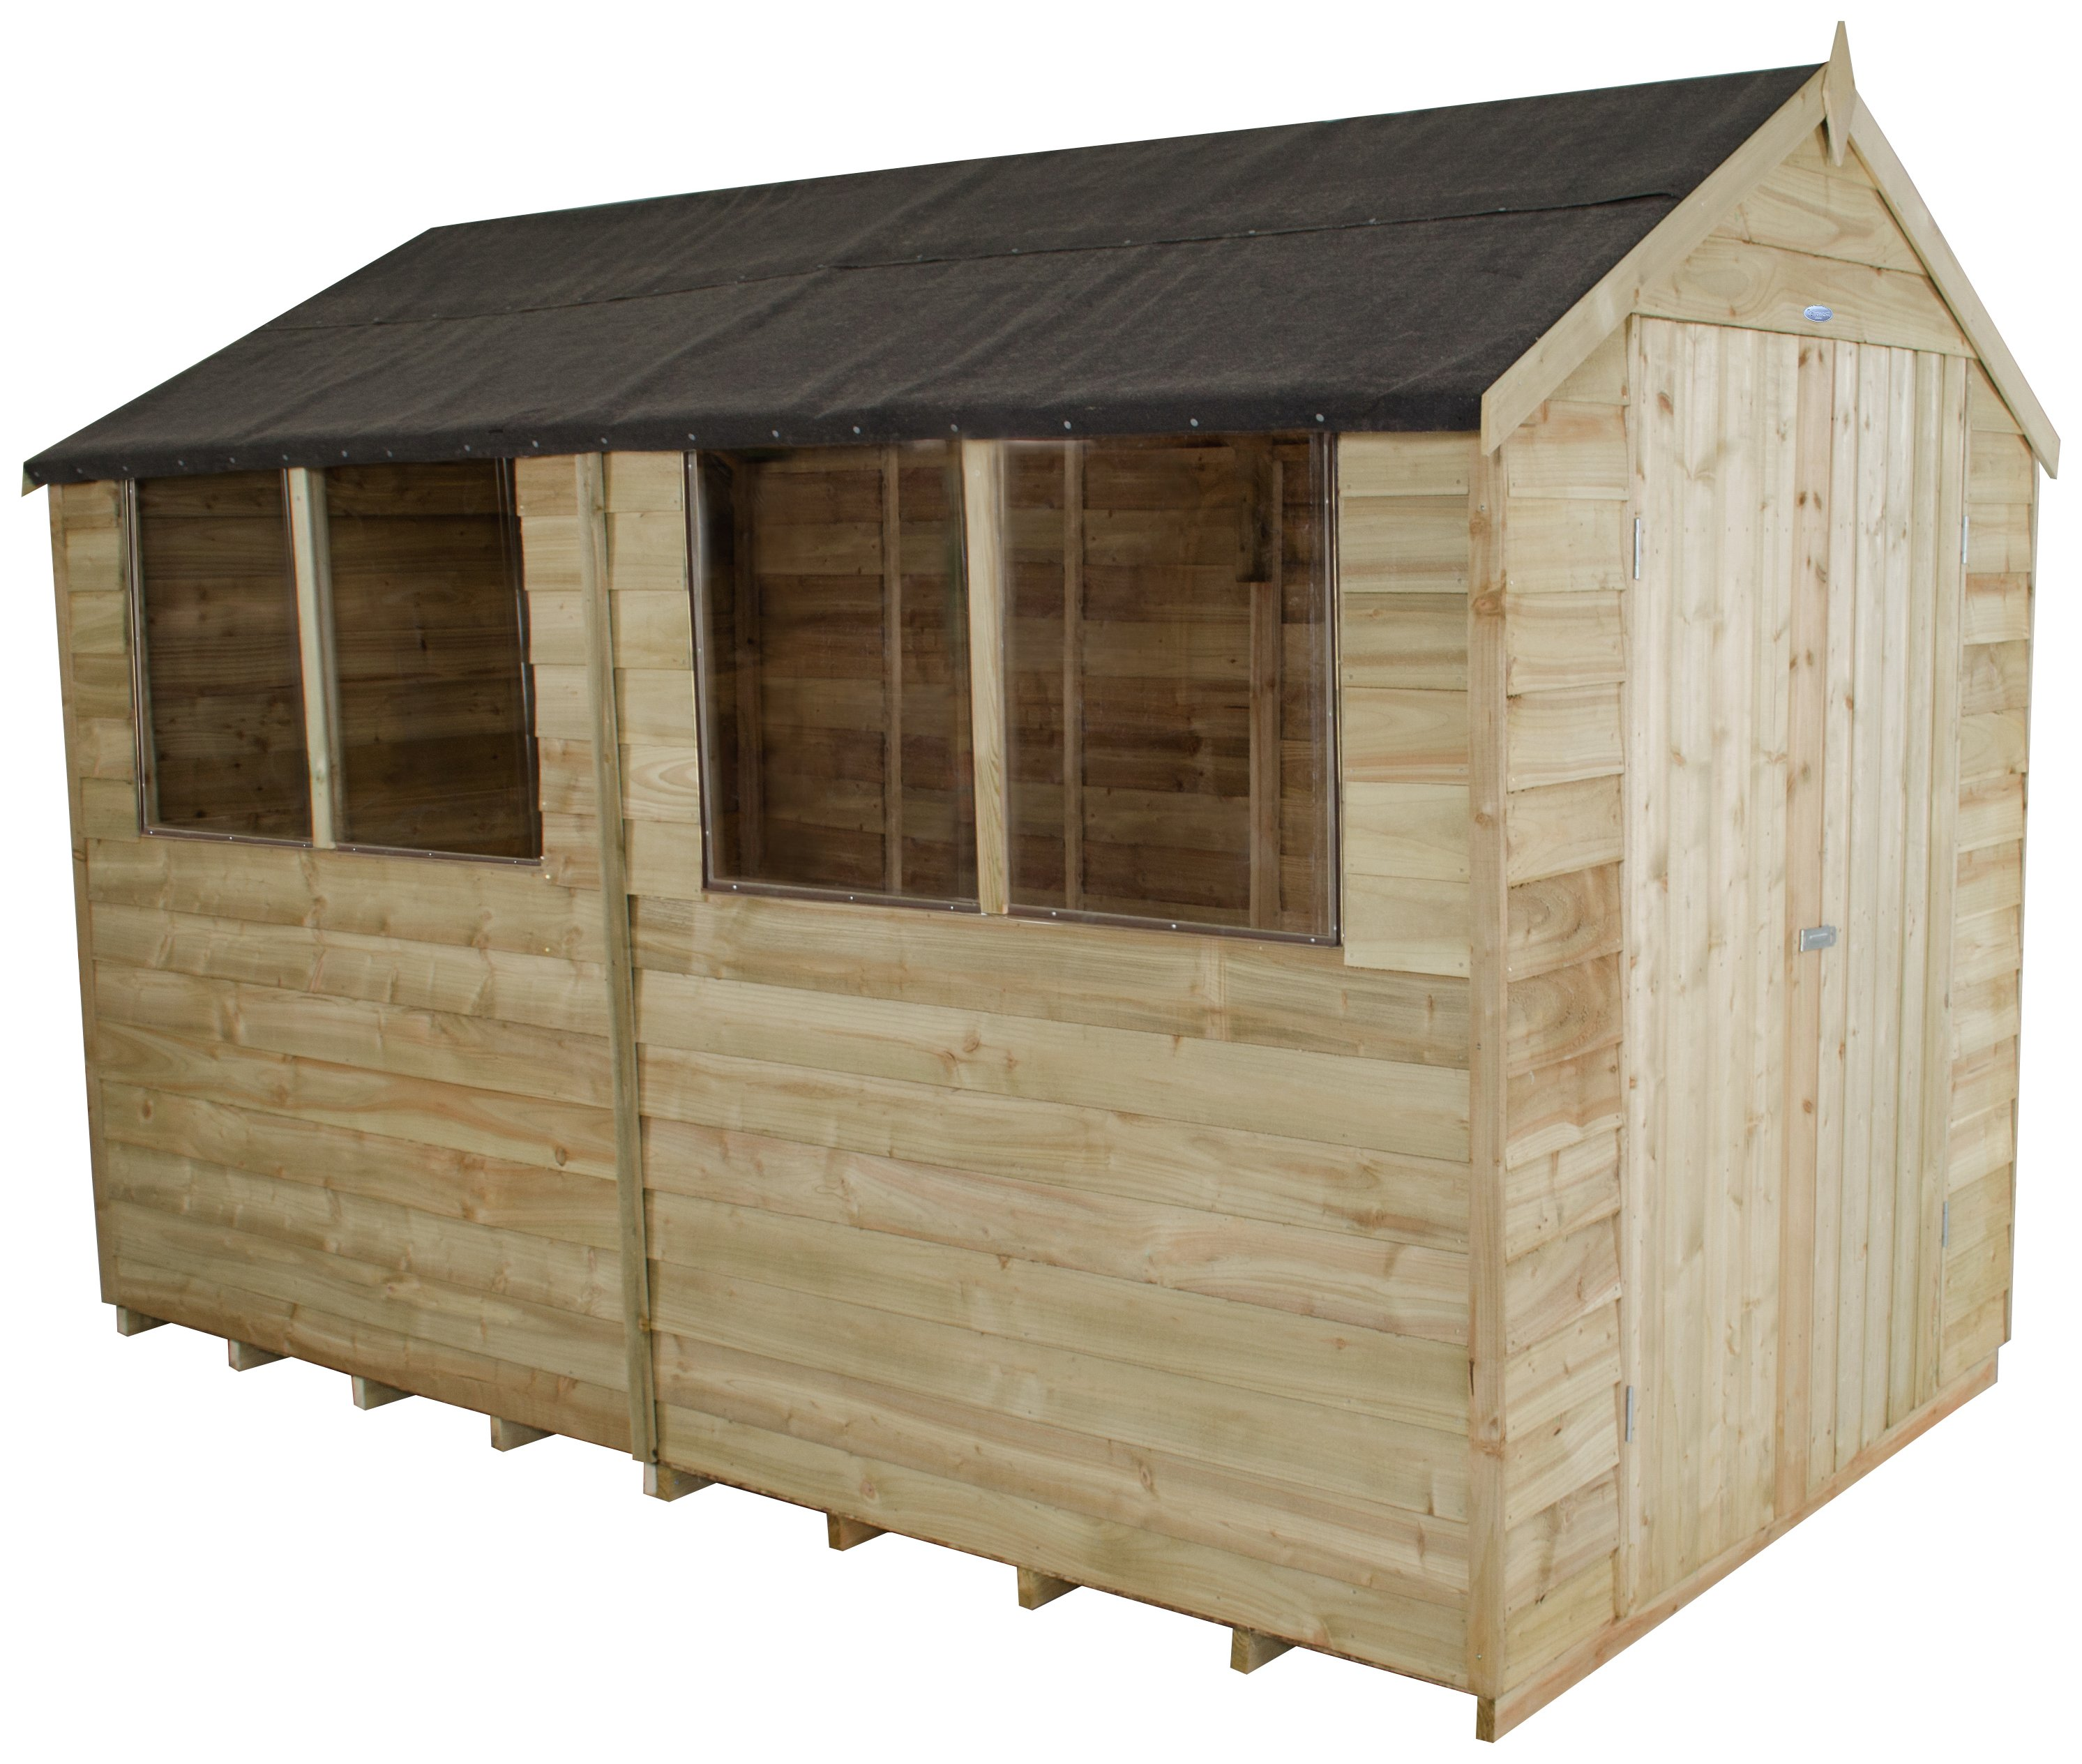 forest-overlap-wooden-double-door-shed-6-x-10ft